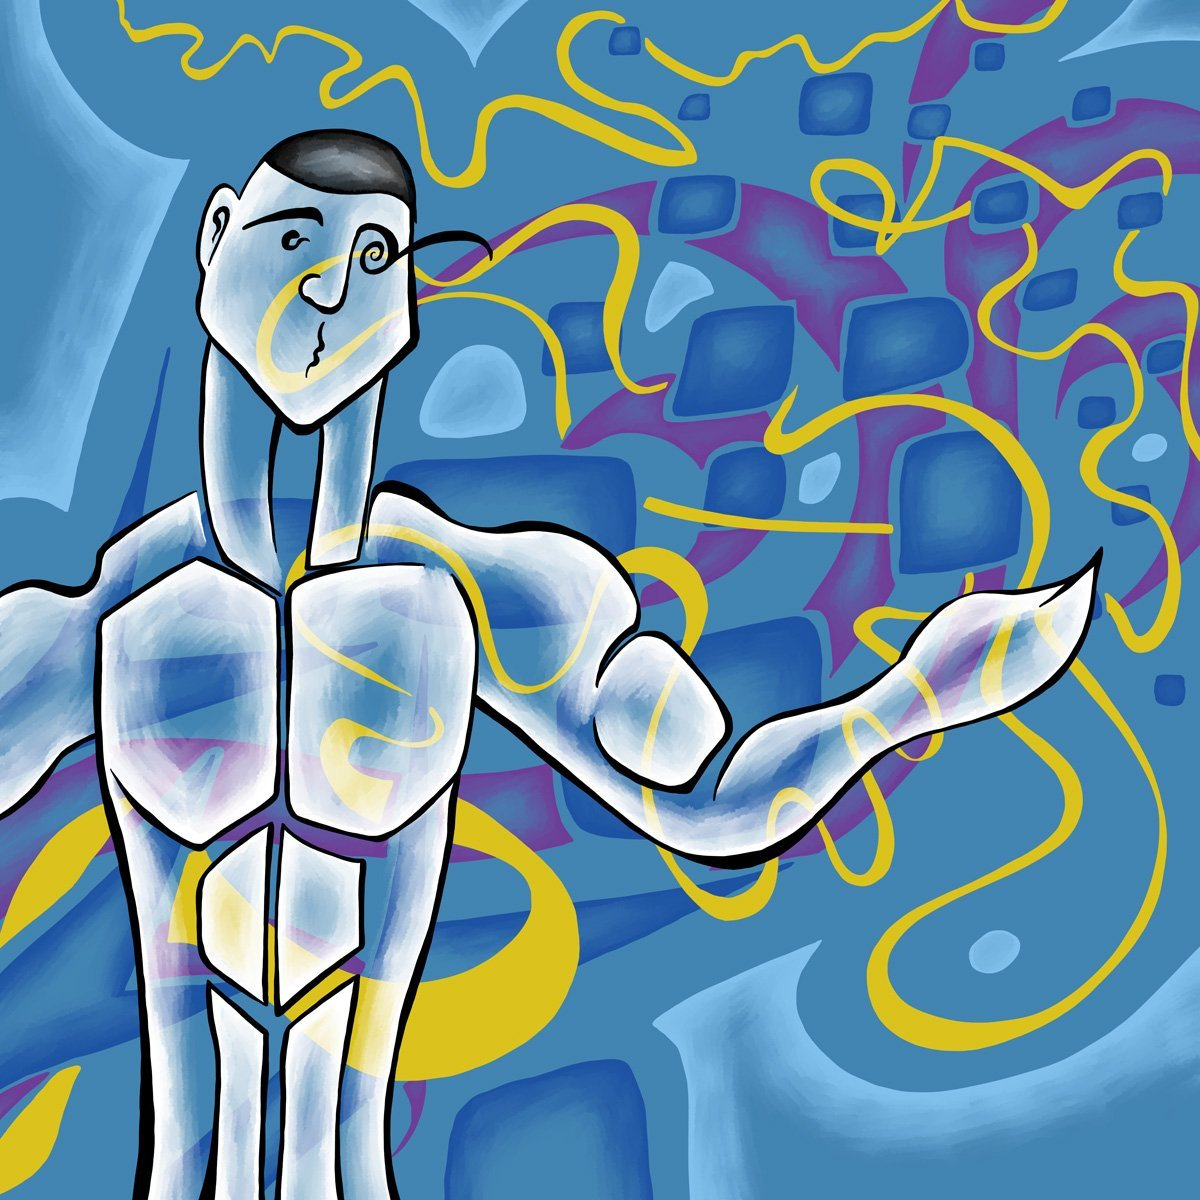 The image shows a piece of artwork by Jina Wallwork. It is a digital painting of a person and a piece of music. This image depicts section 3 of the piece of music, 'Thomas', that was also created by Jina Wallwork. Stylistically this piece of artwork has links with expressionism and abstract art.